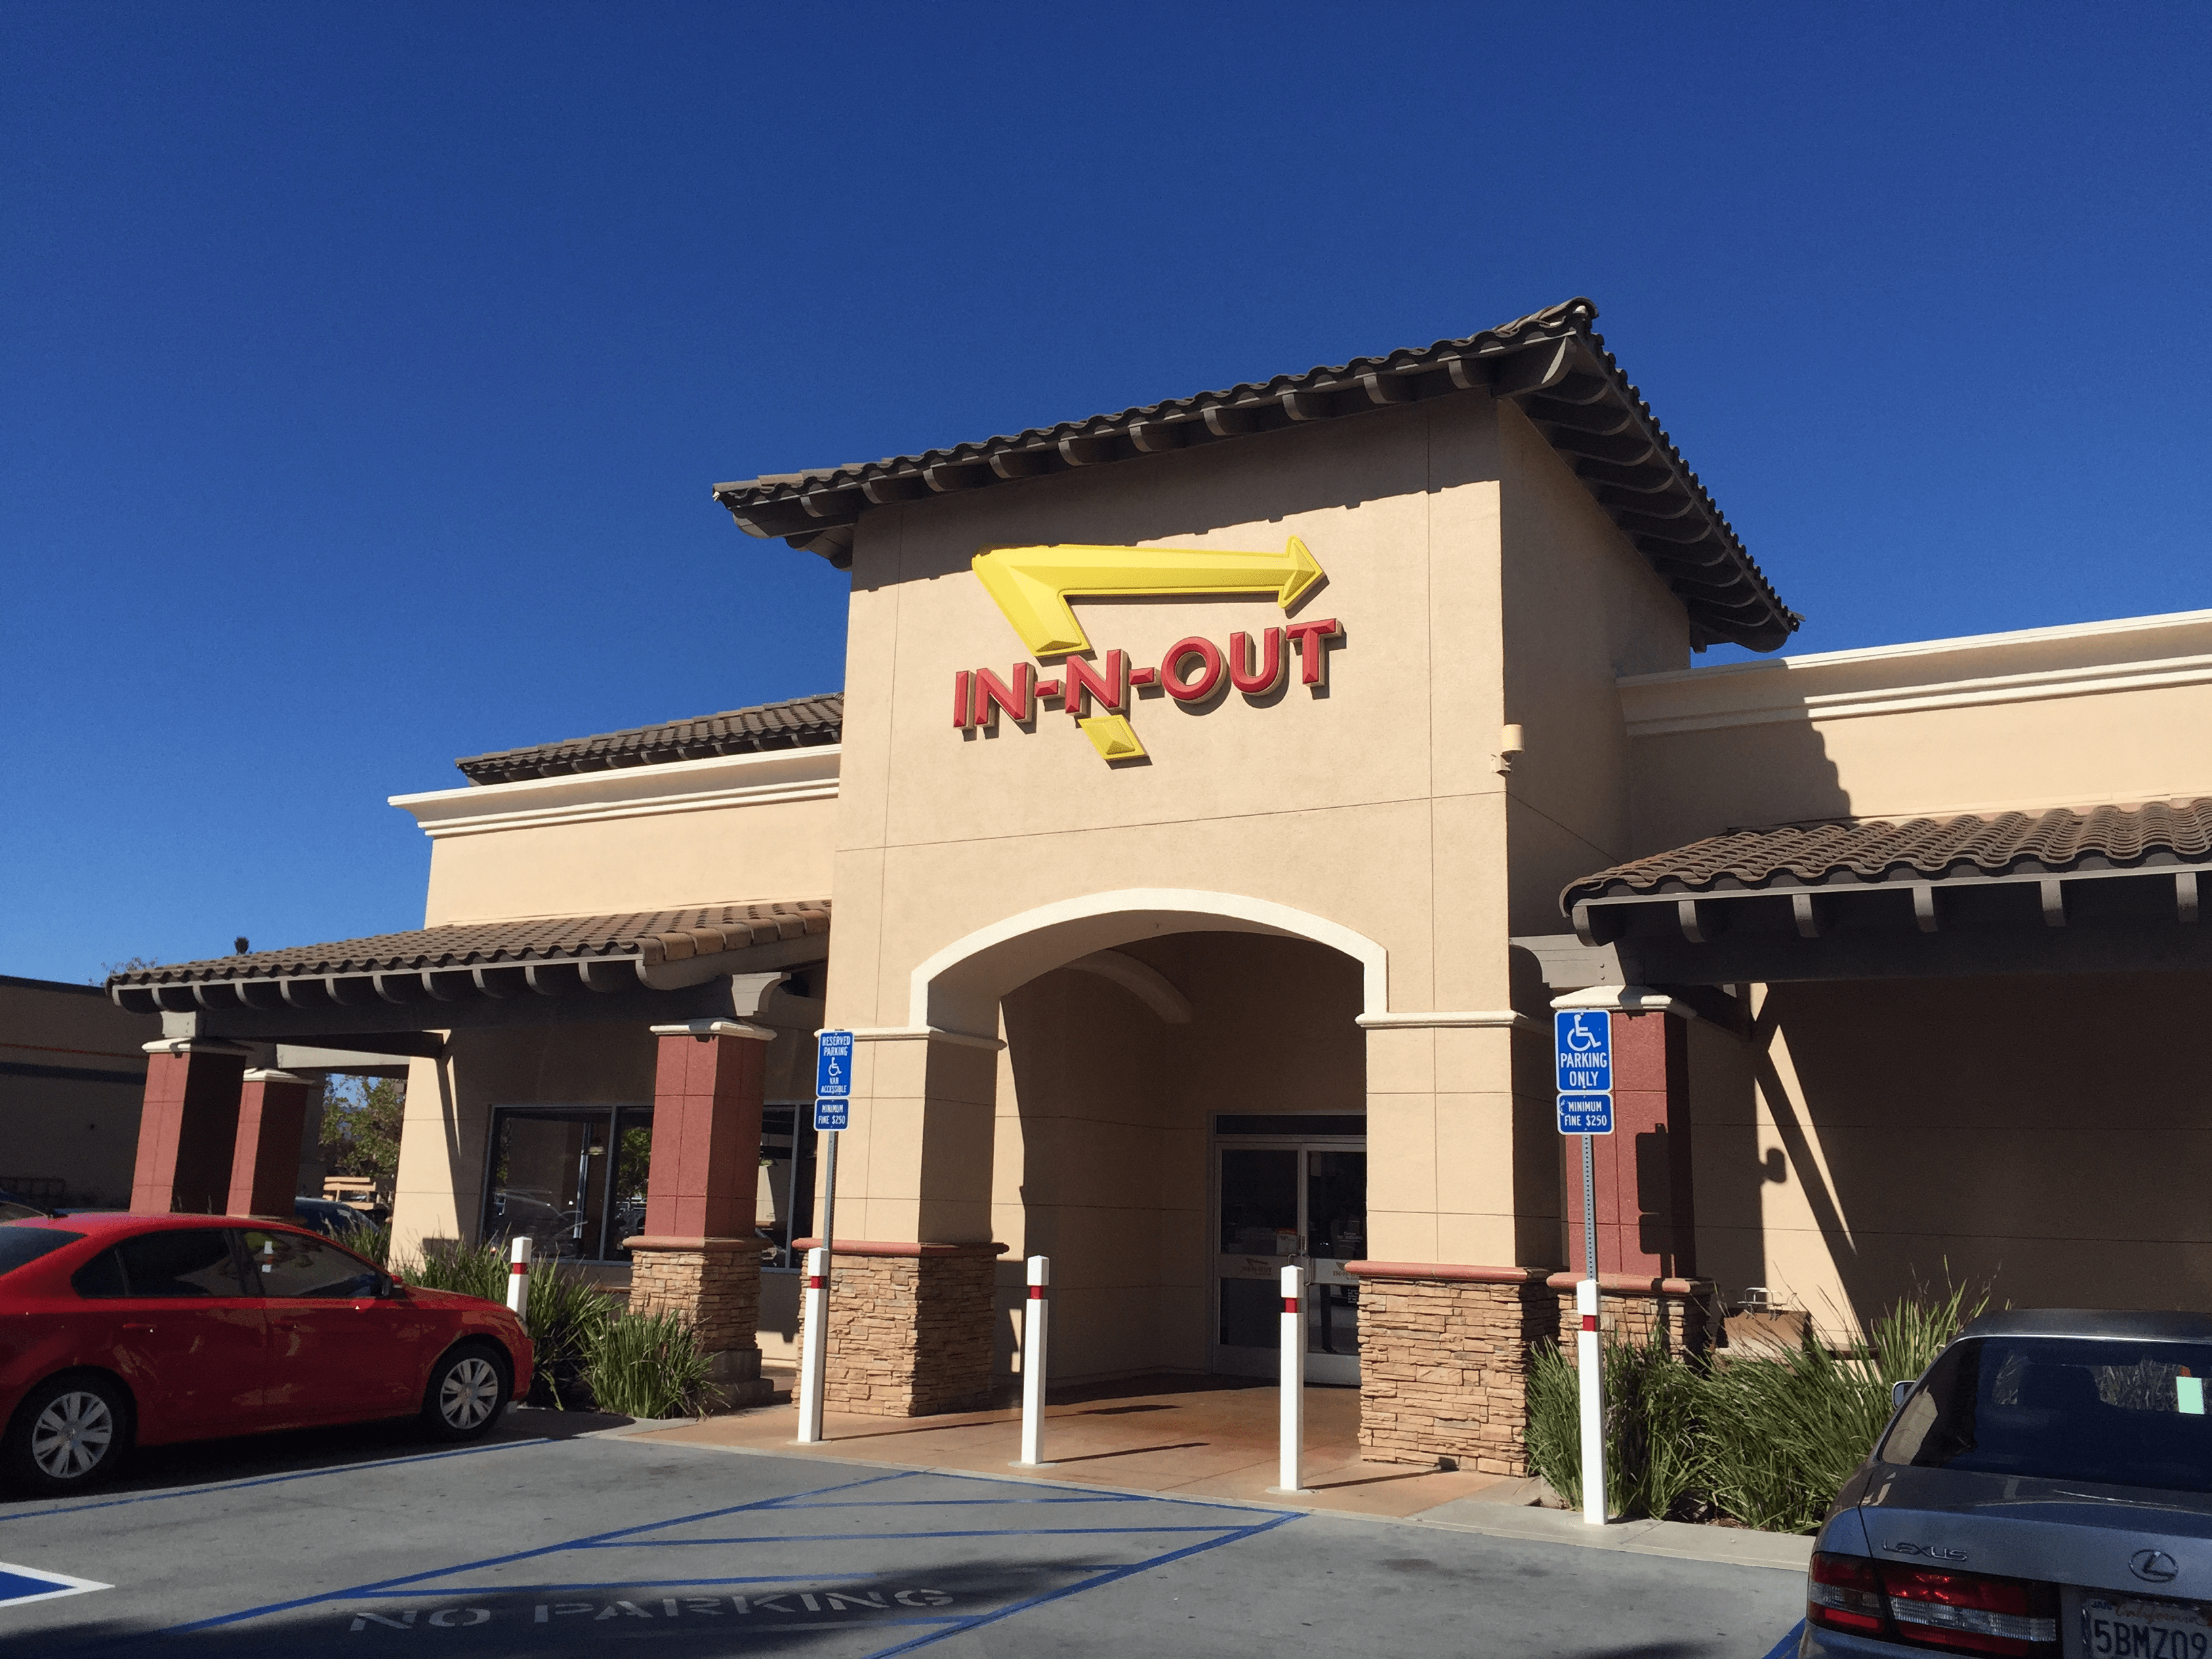 Snyder became president of In-N-Out in 2010 and in 2012, she inherited 50% of the company's shares.